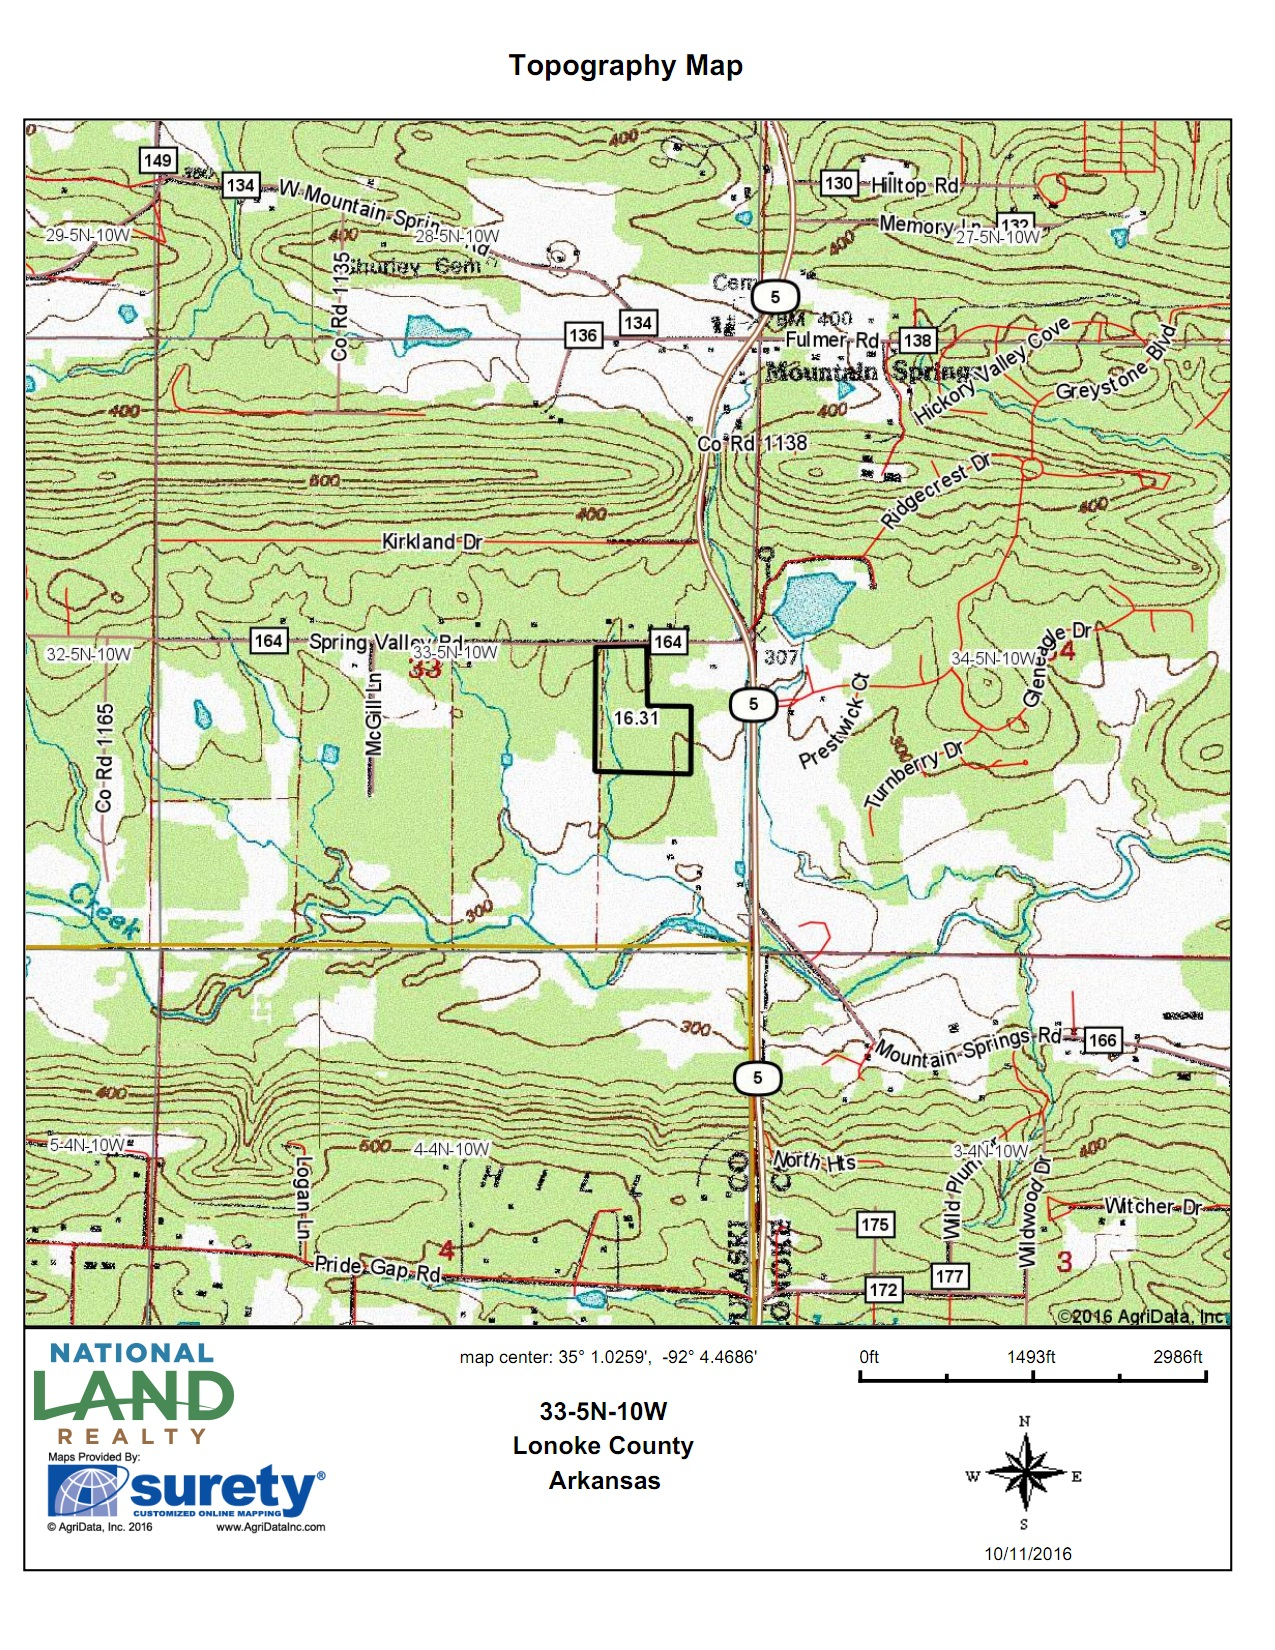 Topo Map<br>(Doc 3 of 5)